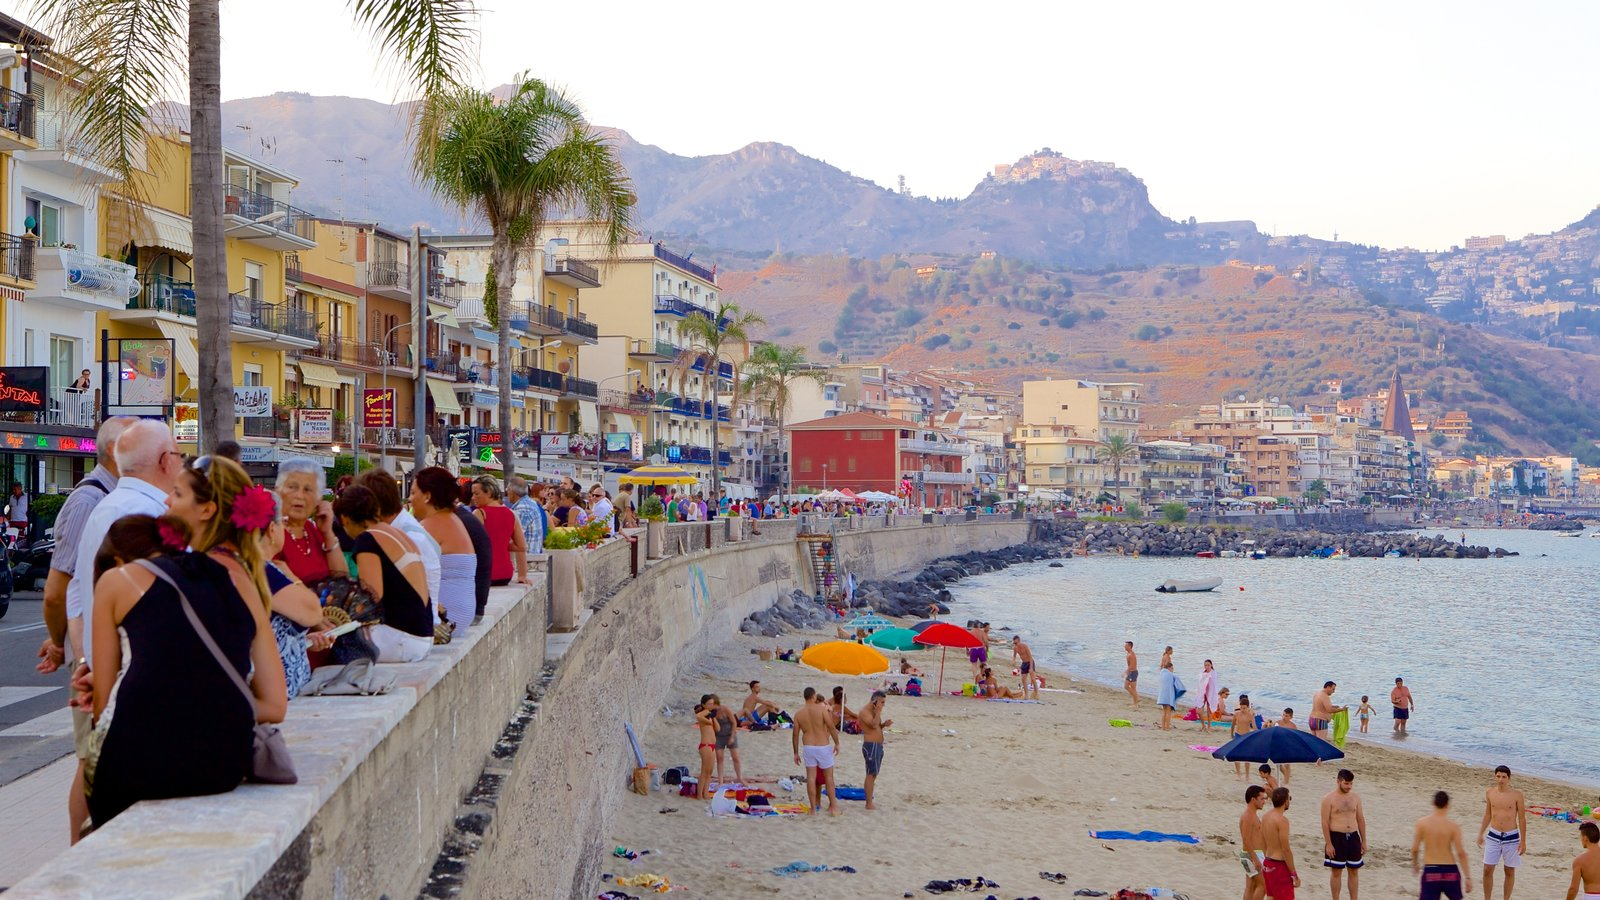 Giardini Naxos which includes a sandy beach and a coastal town as well as a large group of people